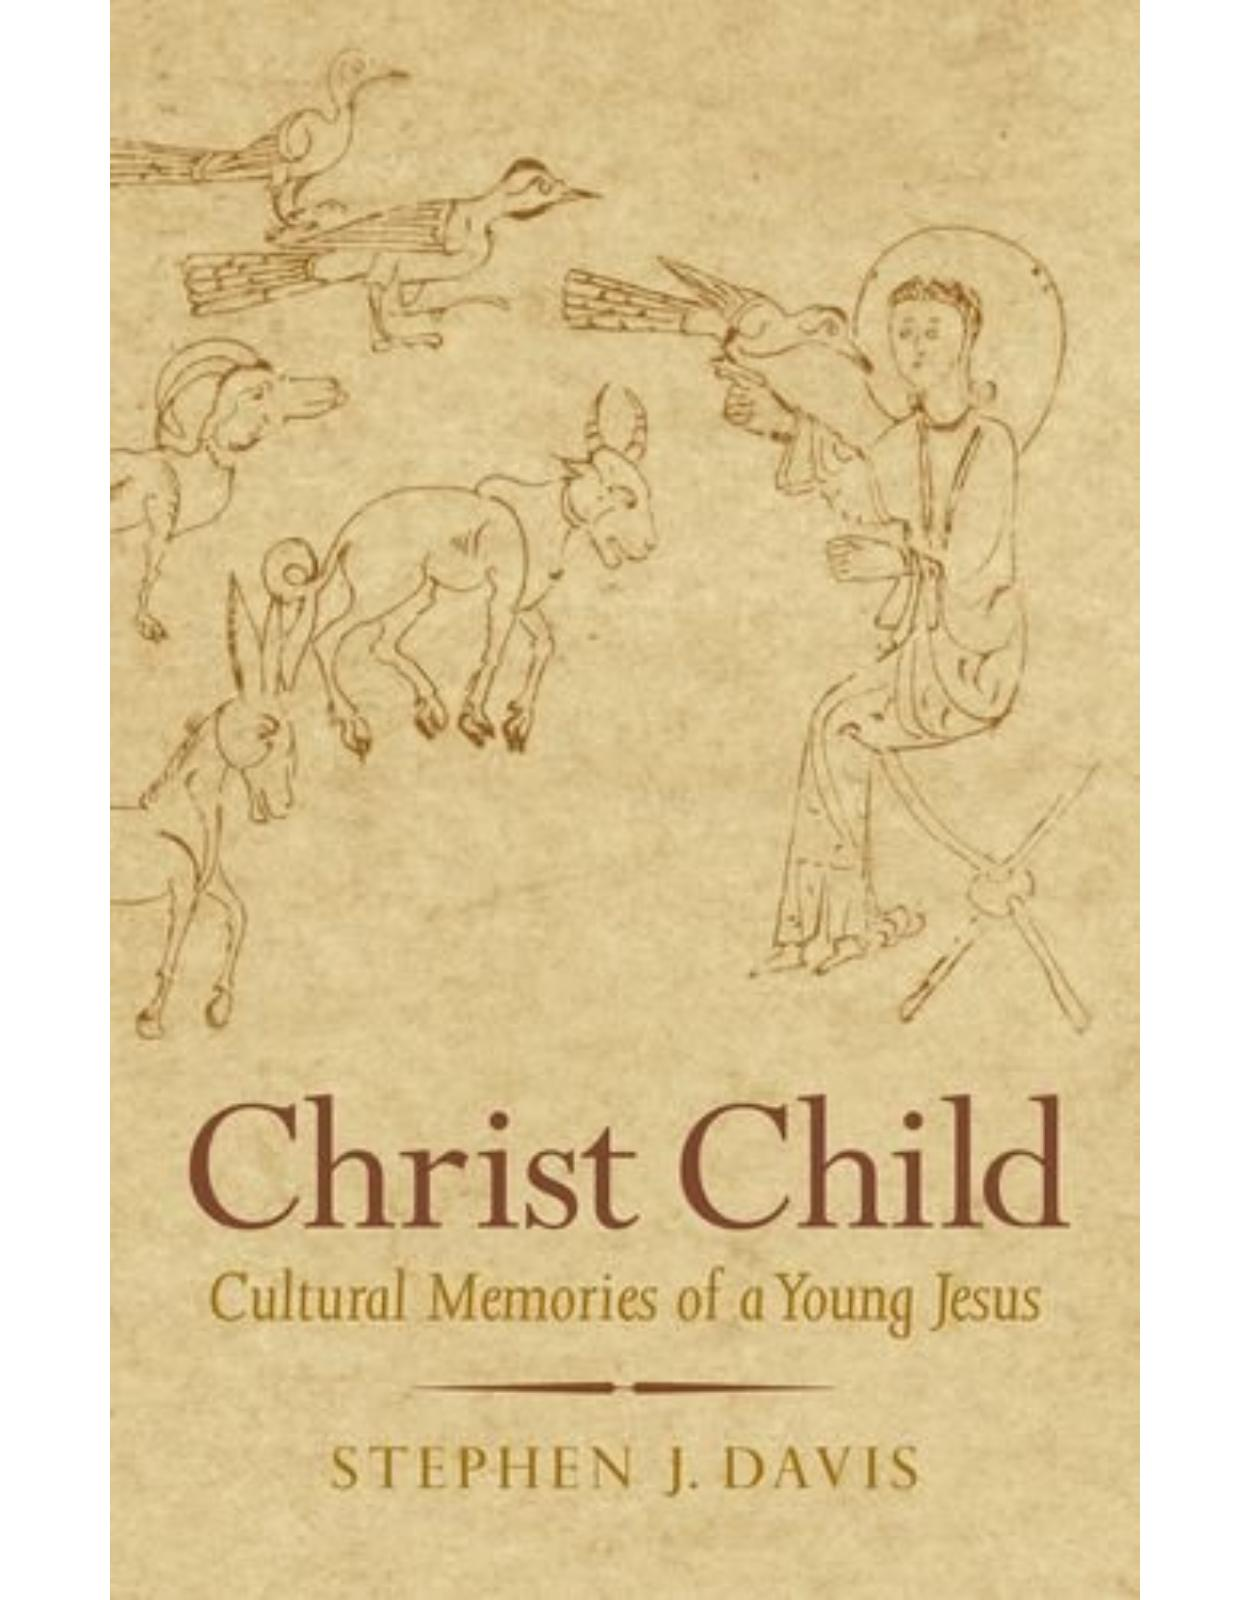 Christ Child. Cultural Memories of a Young Jesus